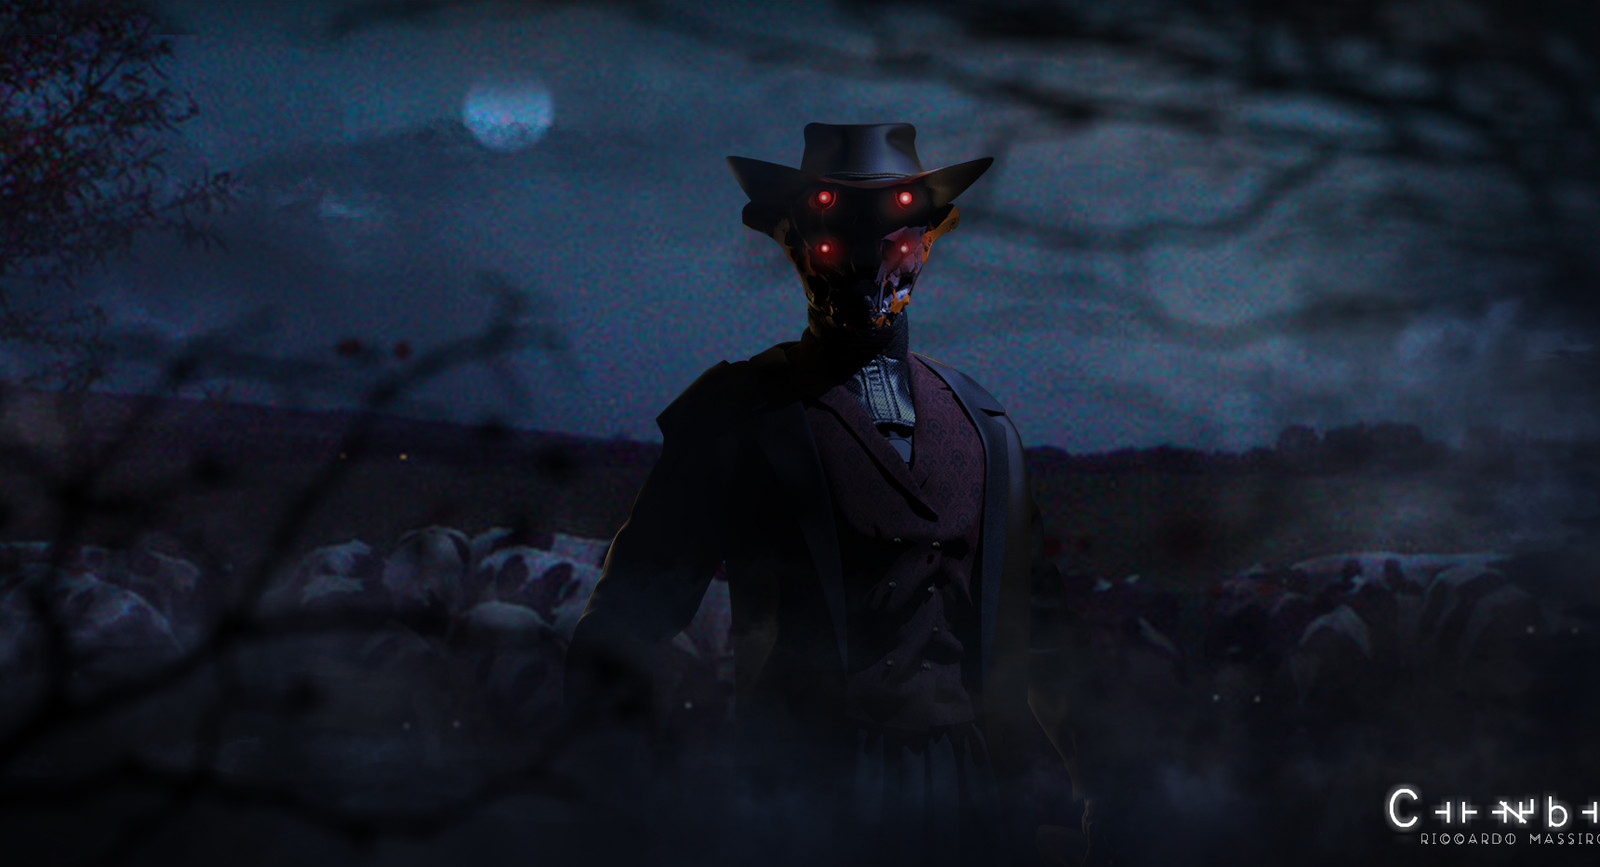 Night guardian of the cattle